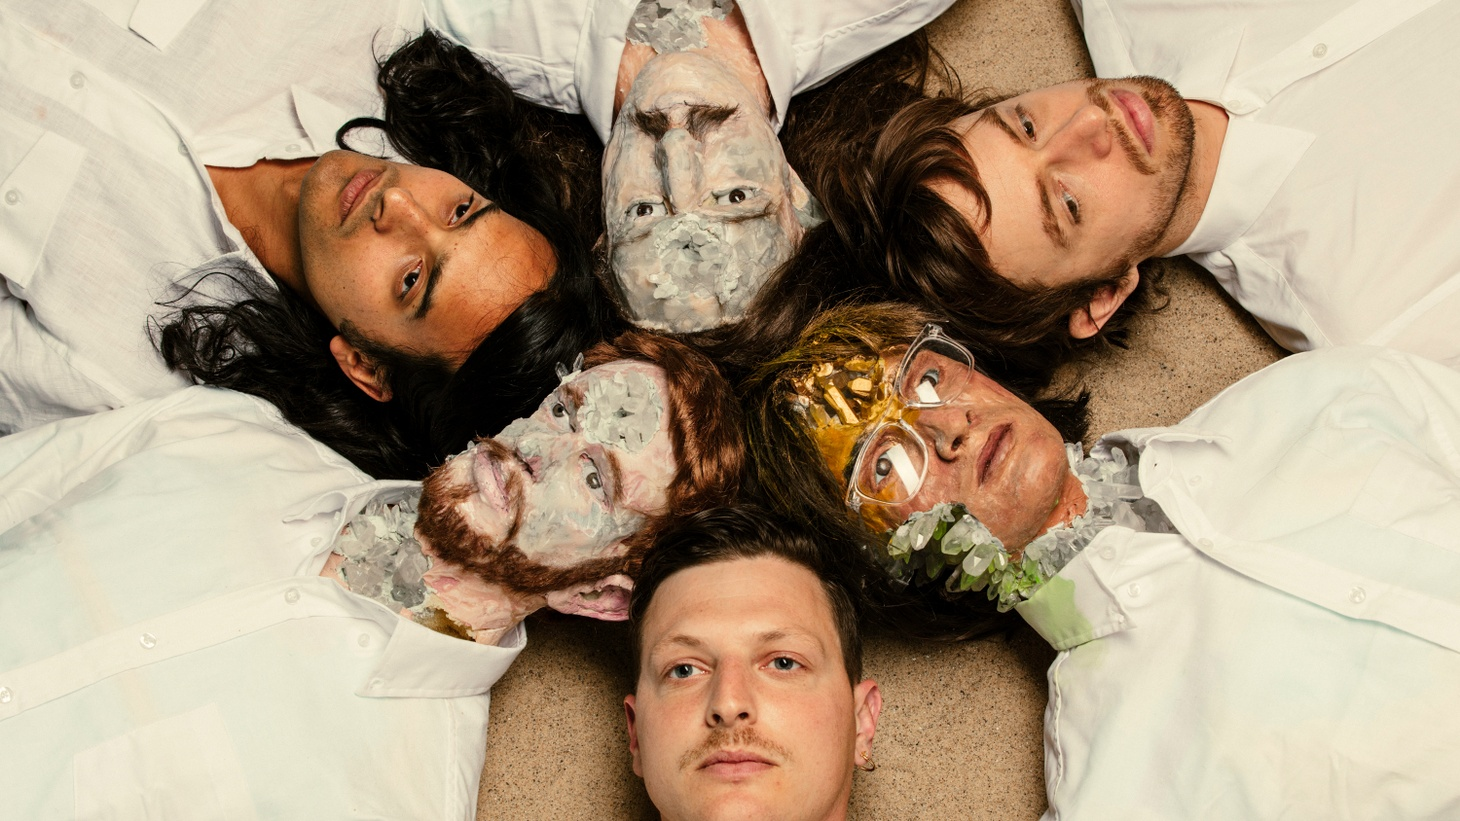 It's no joke that Yeasayer's next album is set for release on April Fool's Day.